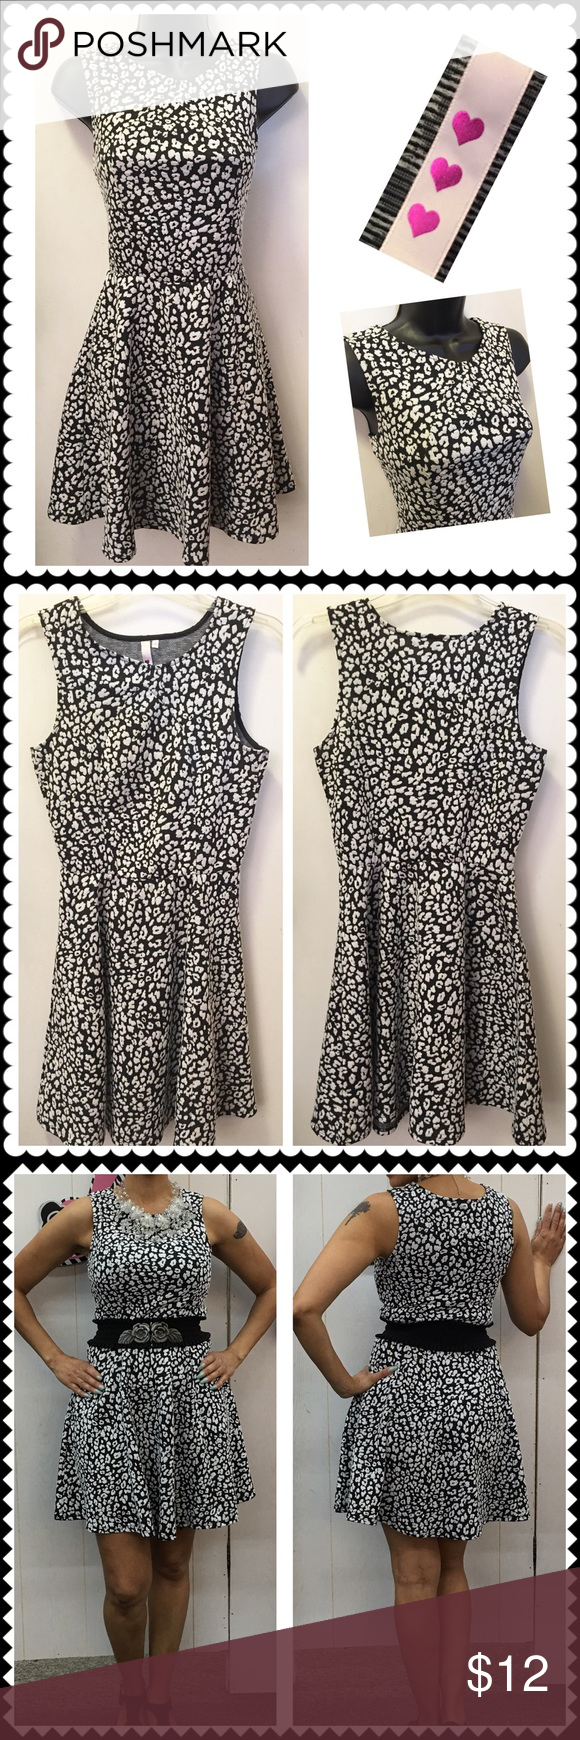 Black/White knit skater dress Sz Small Black and white print knit skater dress by ❤️❤️❤️. Sleeveless. Stretch. Looks great with belt (belt in photo for display only). Sz Small Dresses Mini